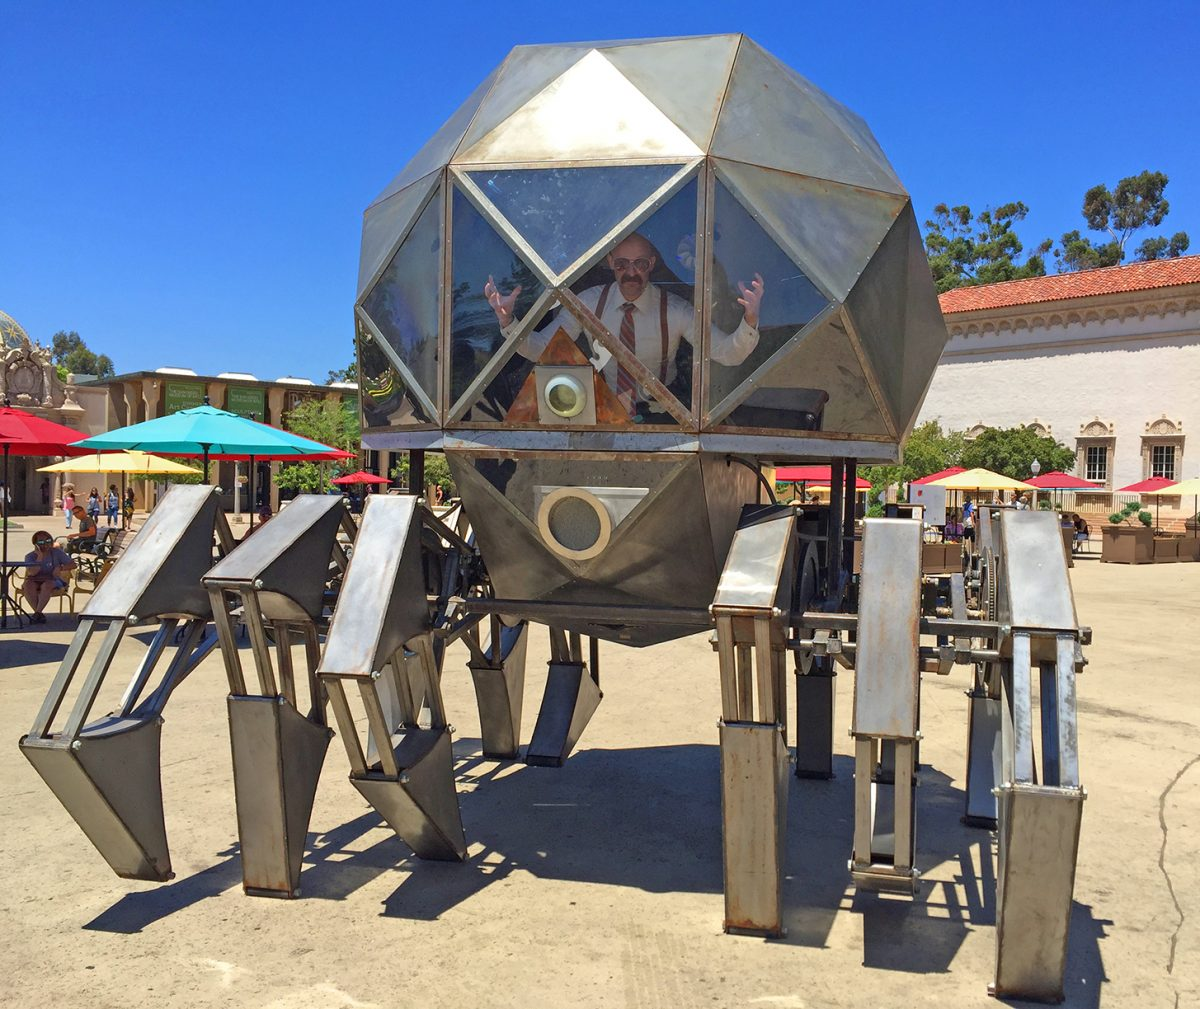 James and the Giant Atomic Death Robot